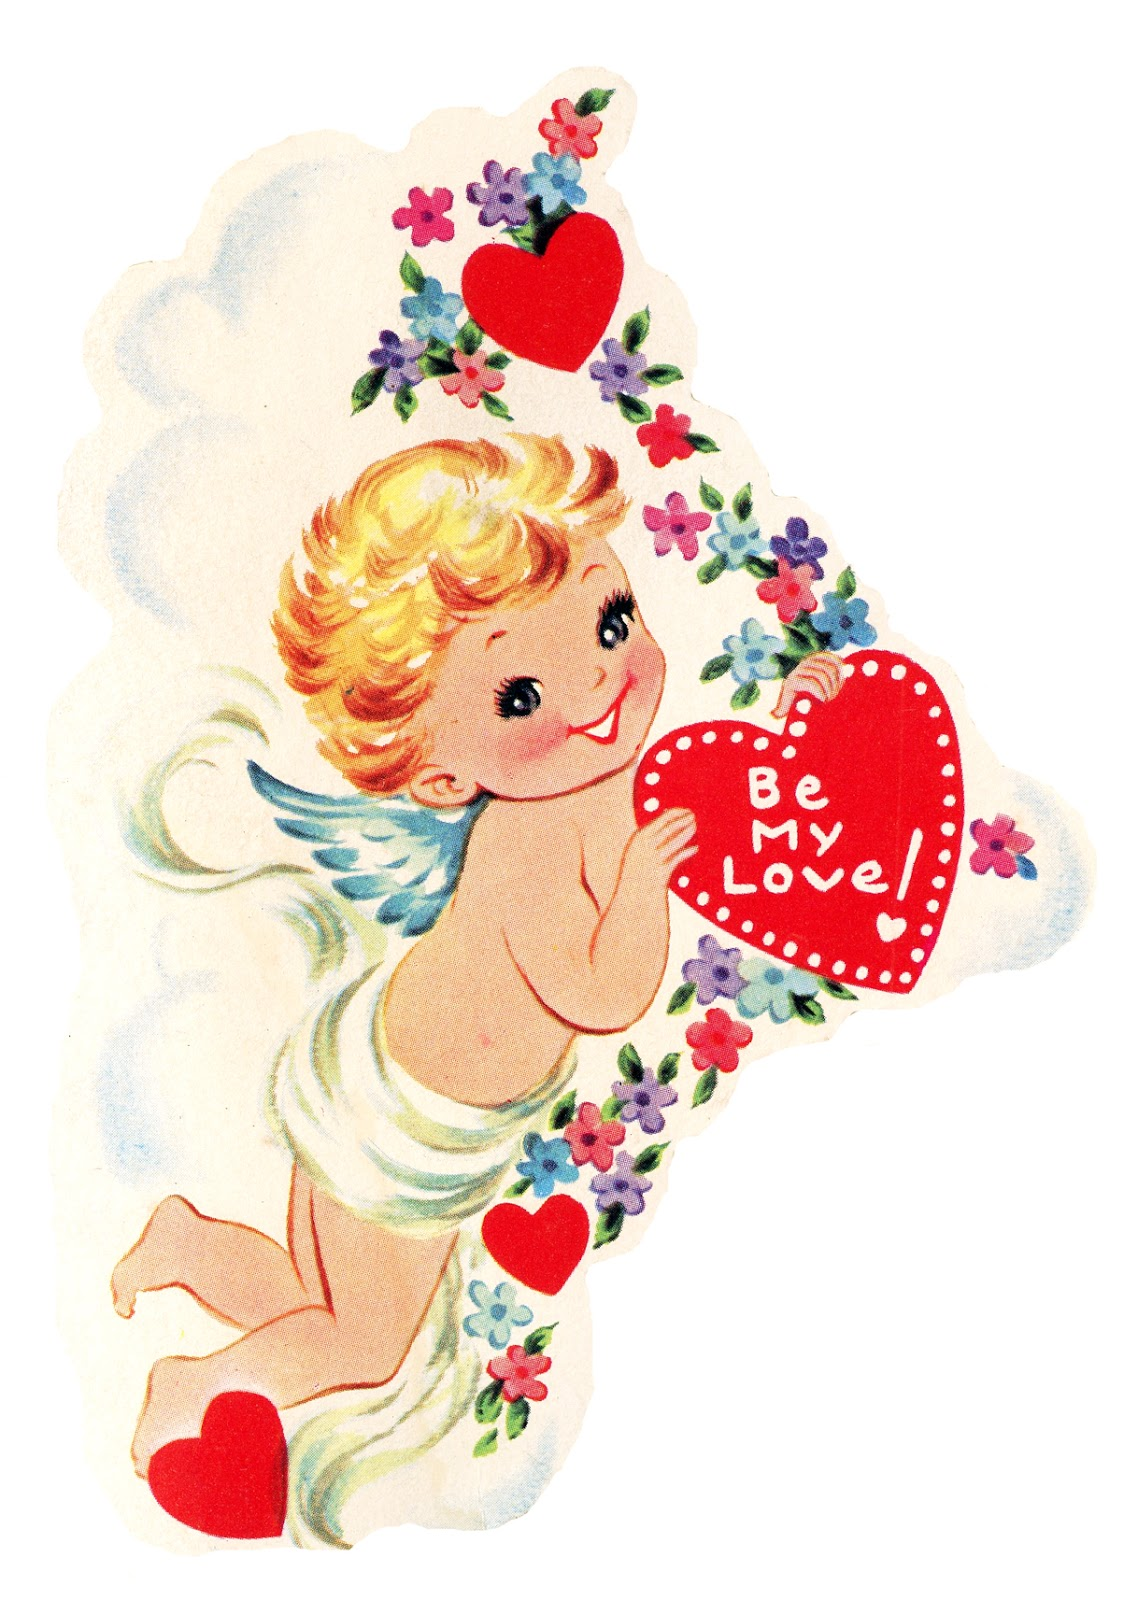 Free Vintage Image - Cupid with Heart - The Graphics Fairy